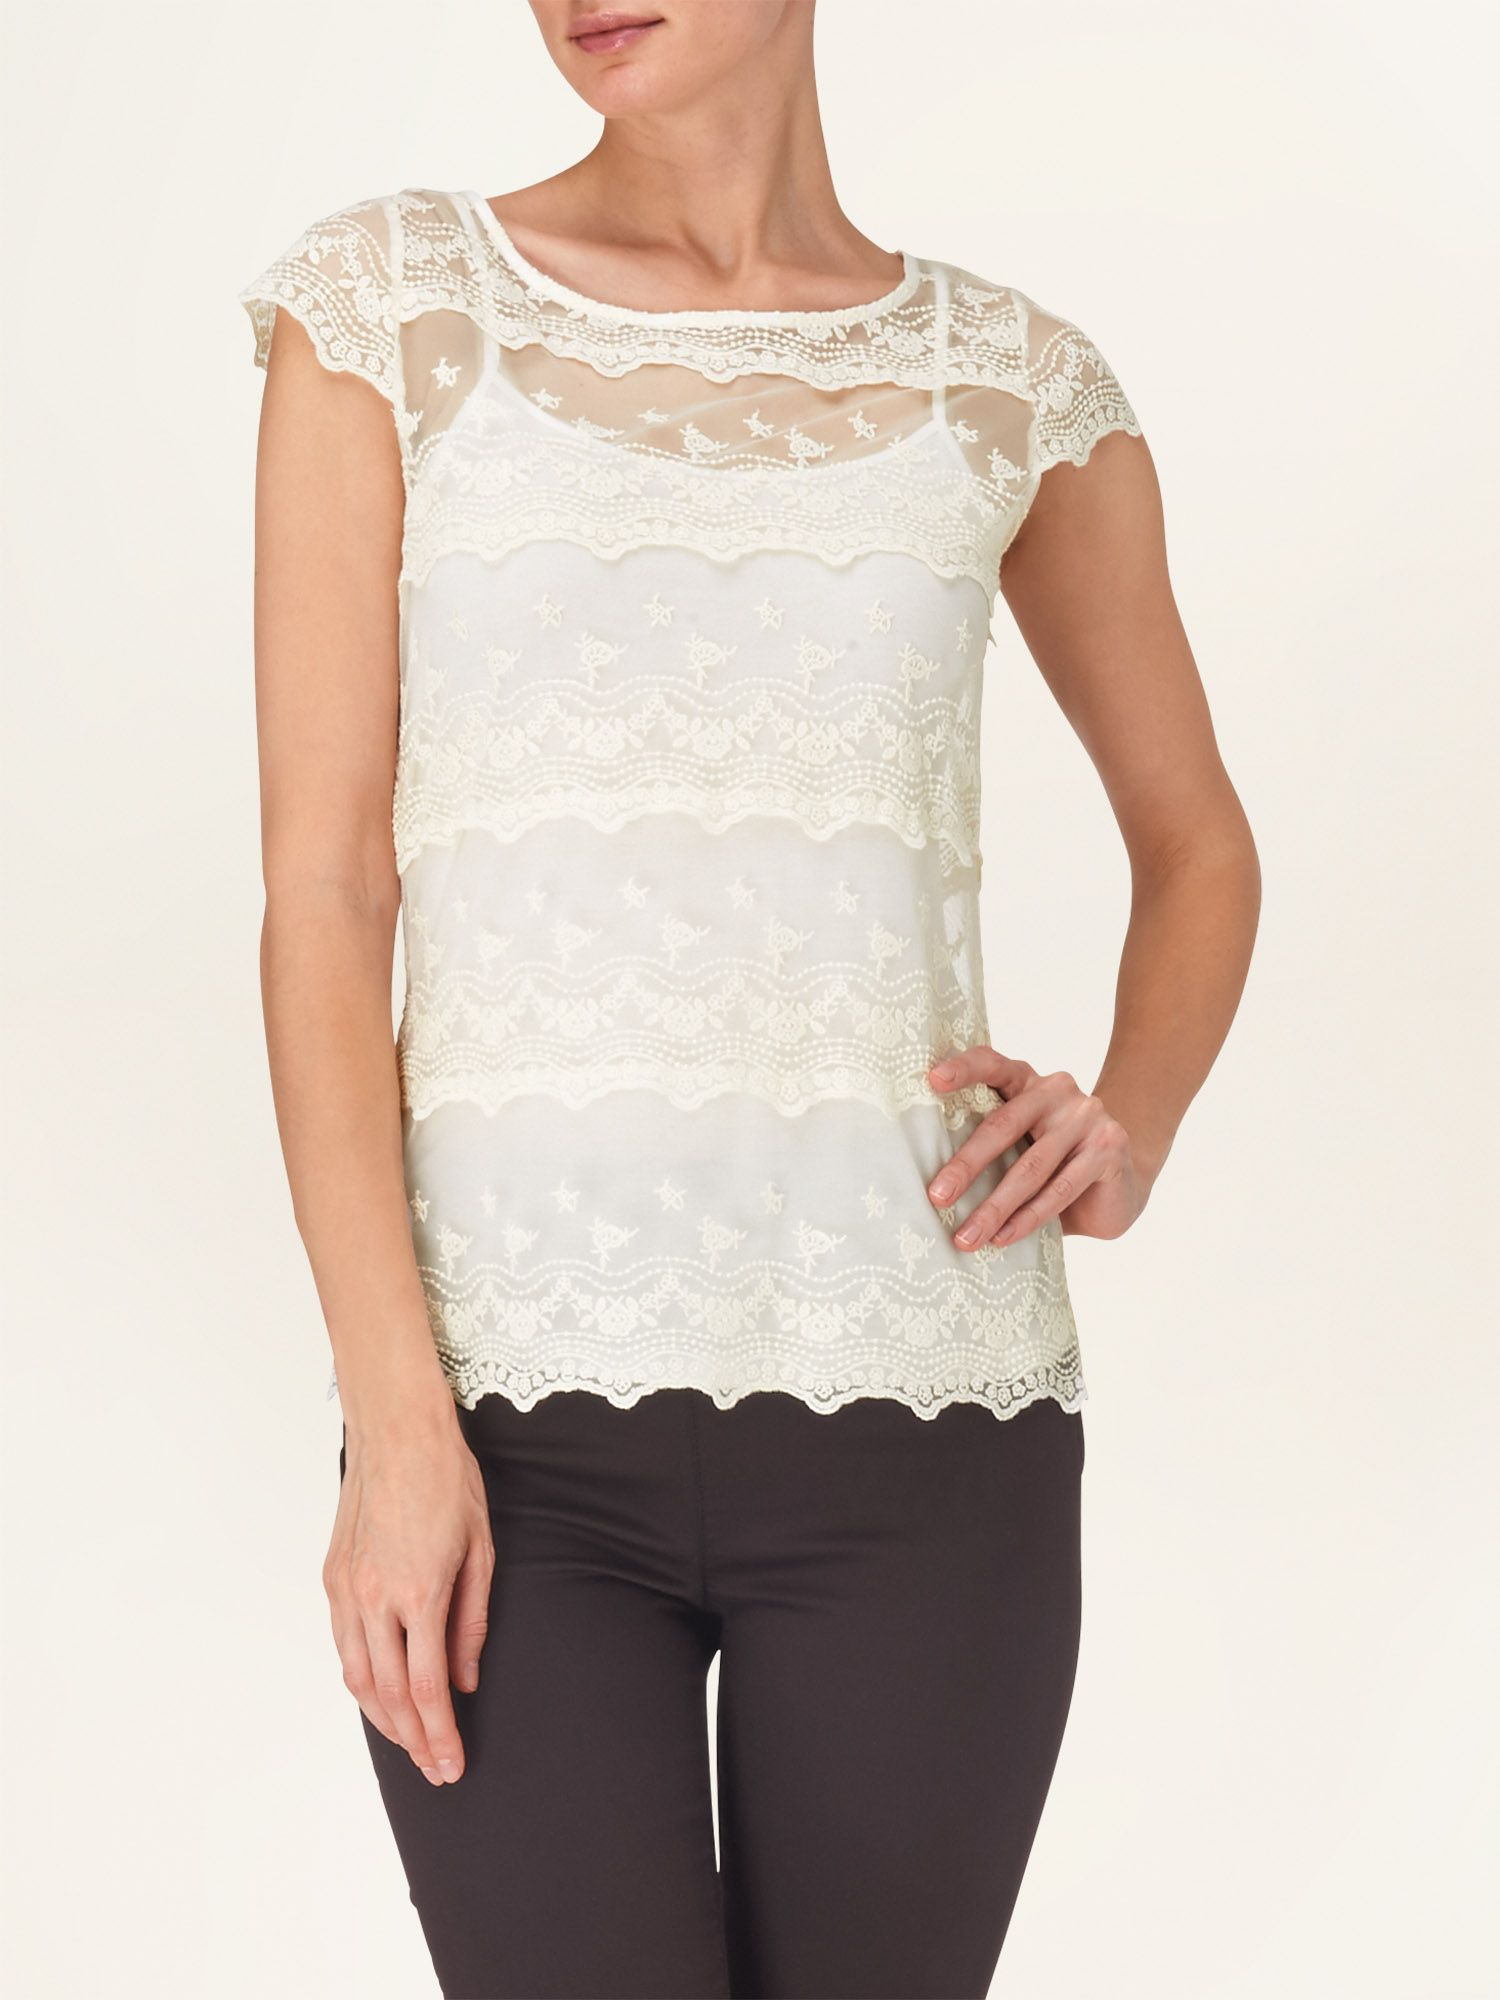 Maura tiered lace top